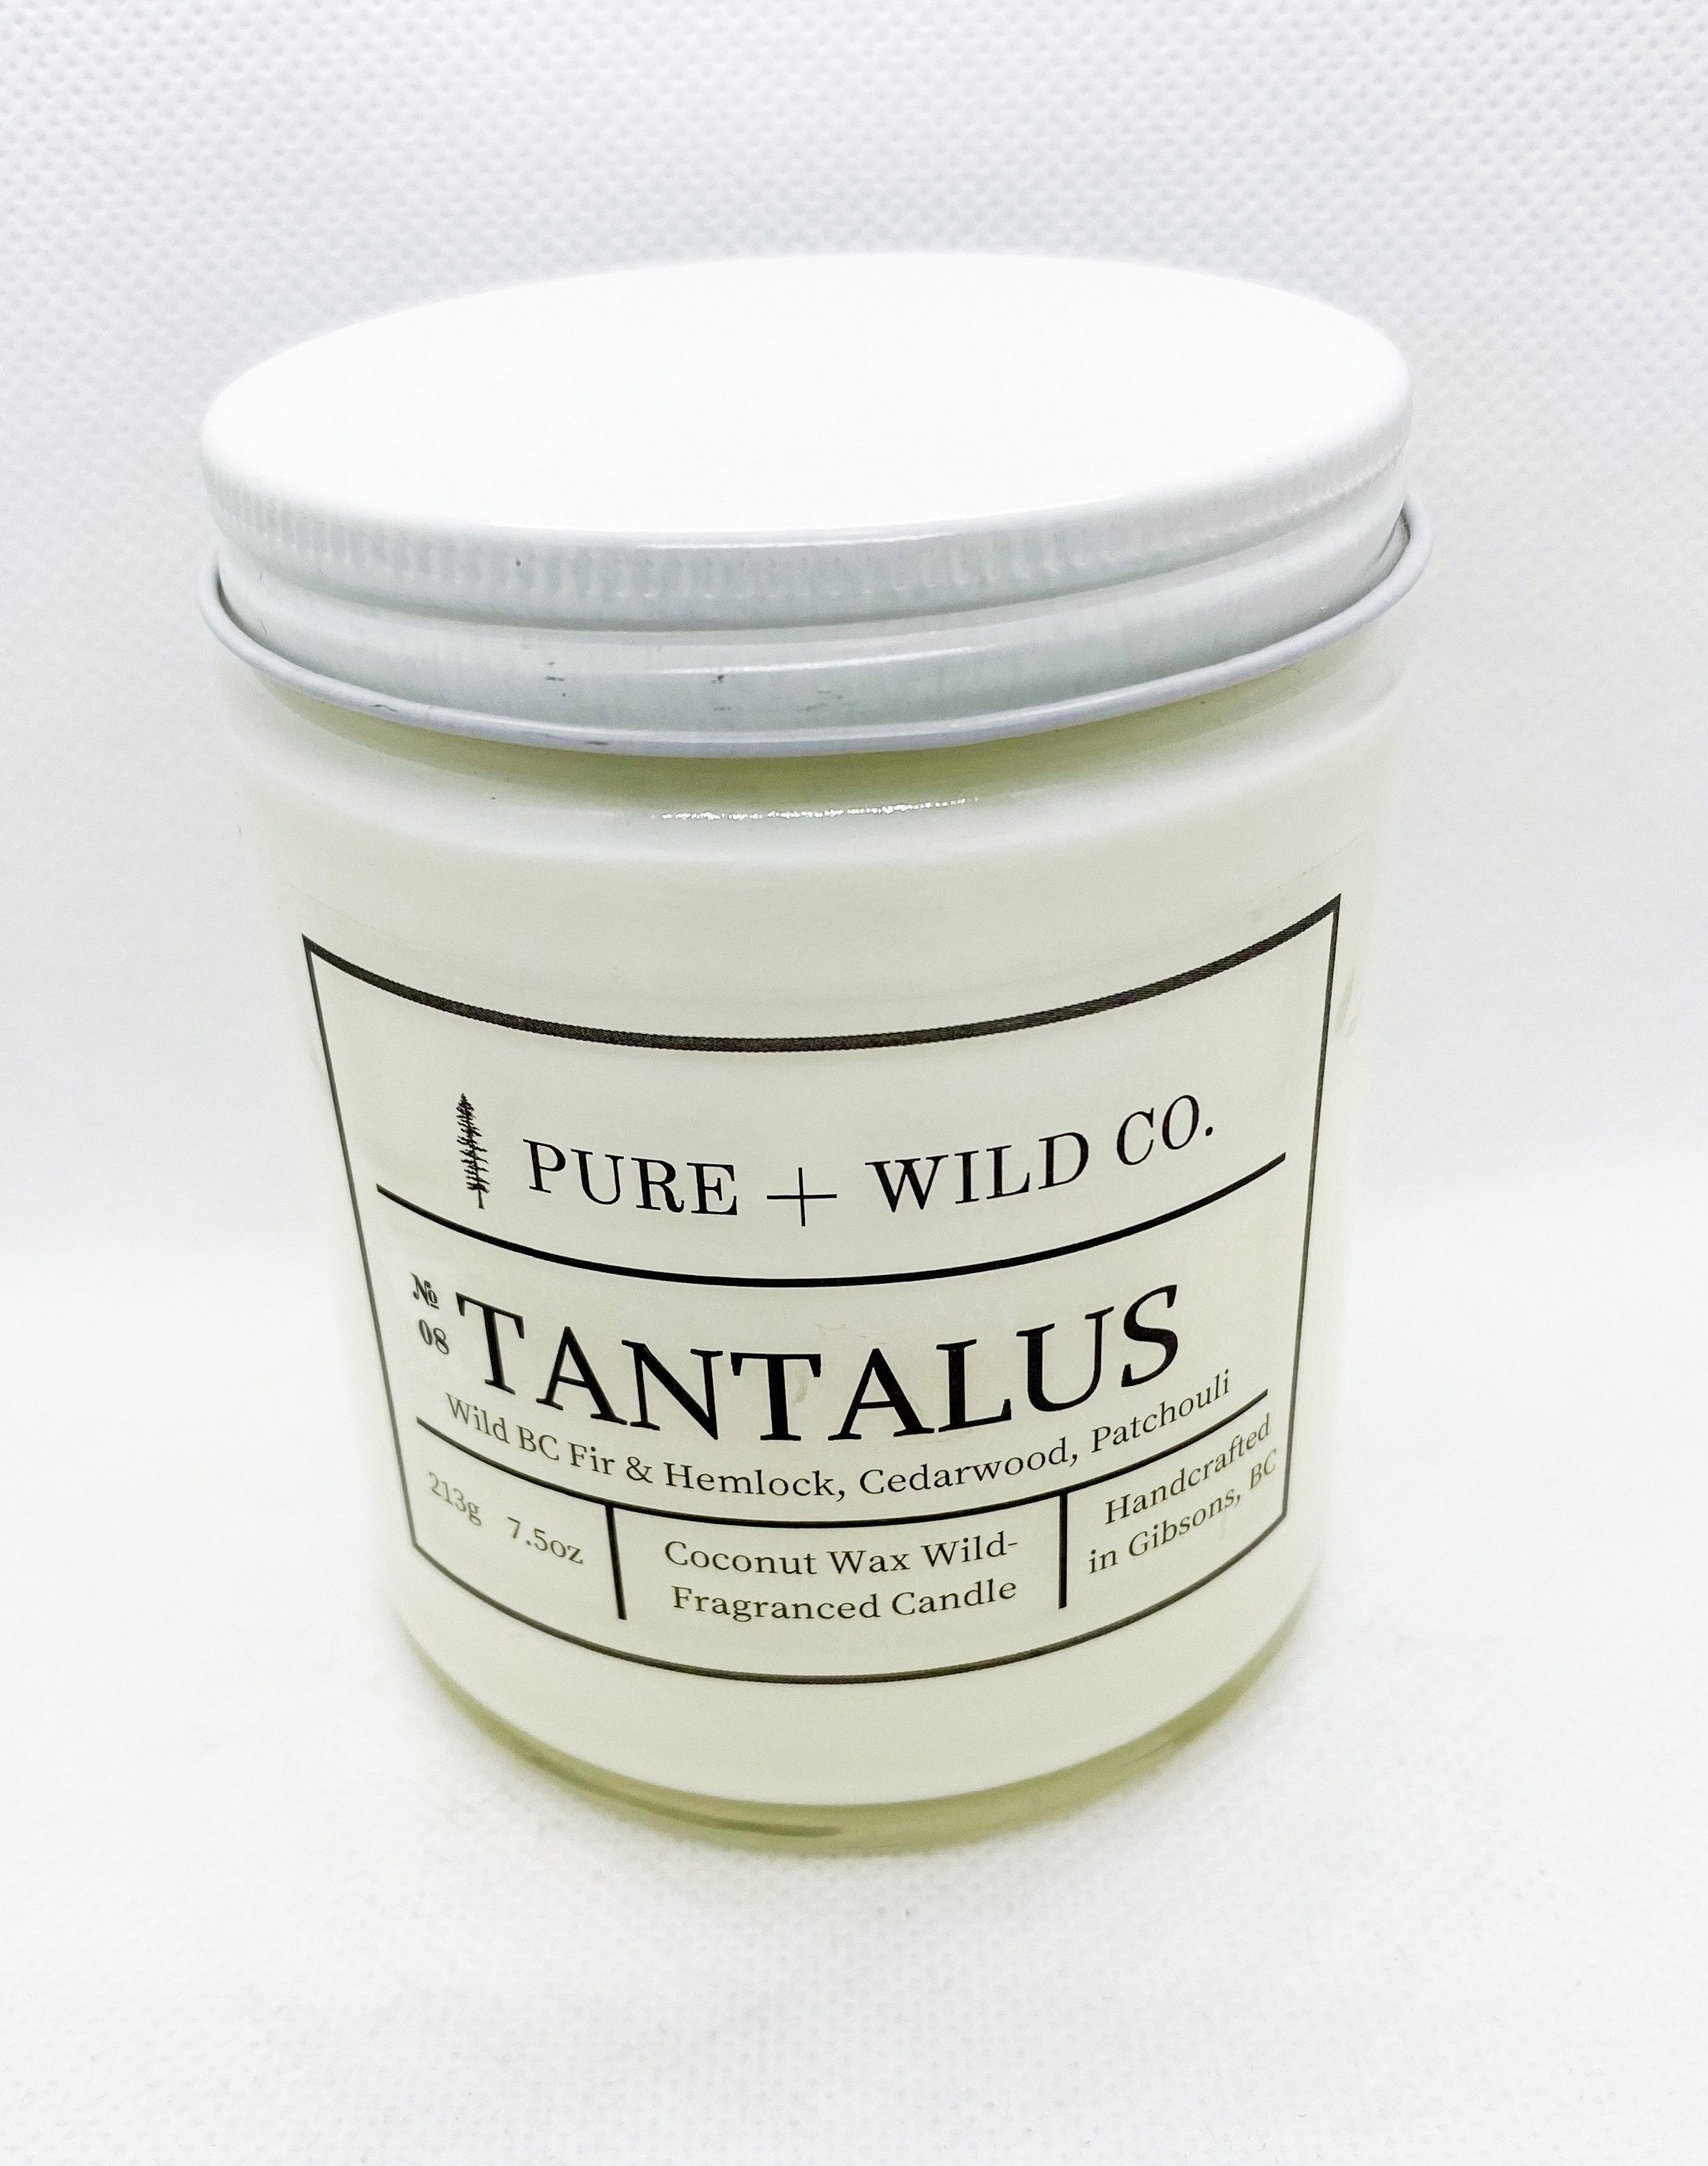 № 08 TANTALUS - Fir, Hemlock, Cedarwood, Patchouli PURE + WILD CO.